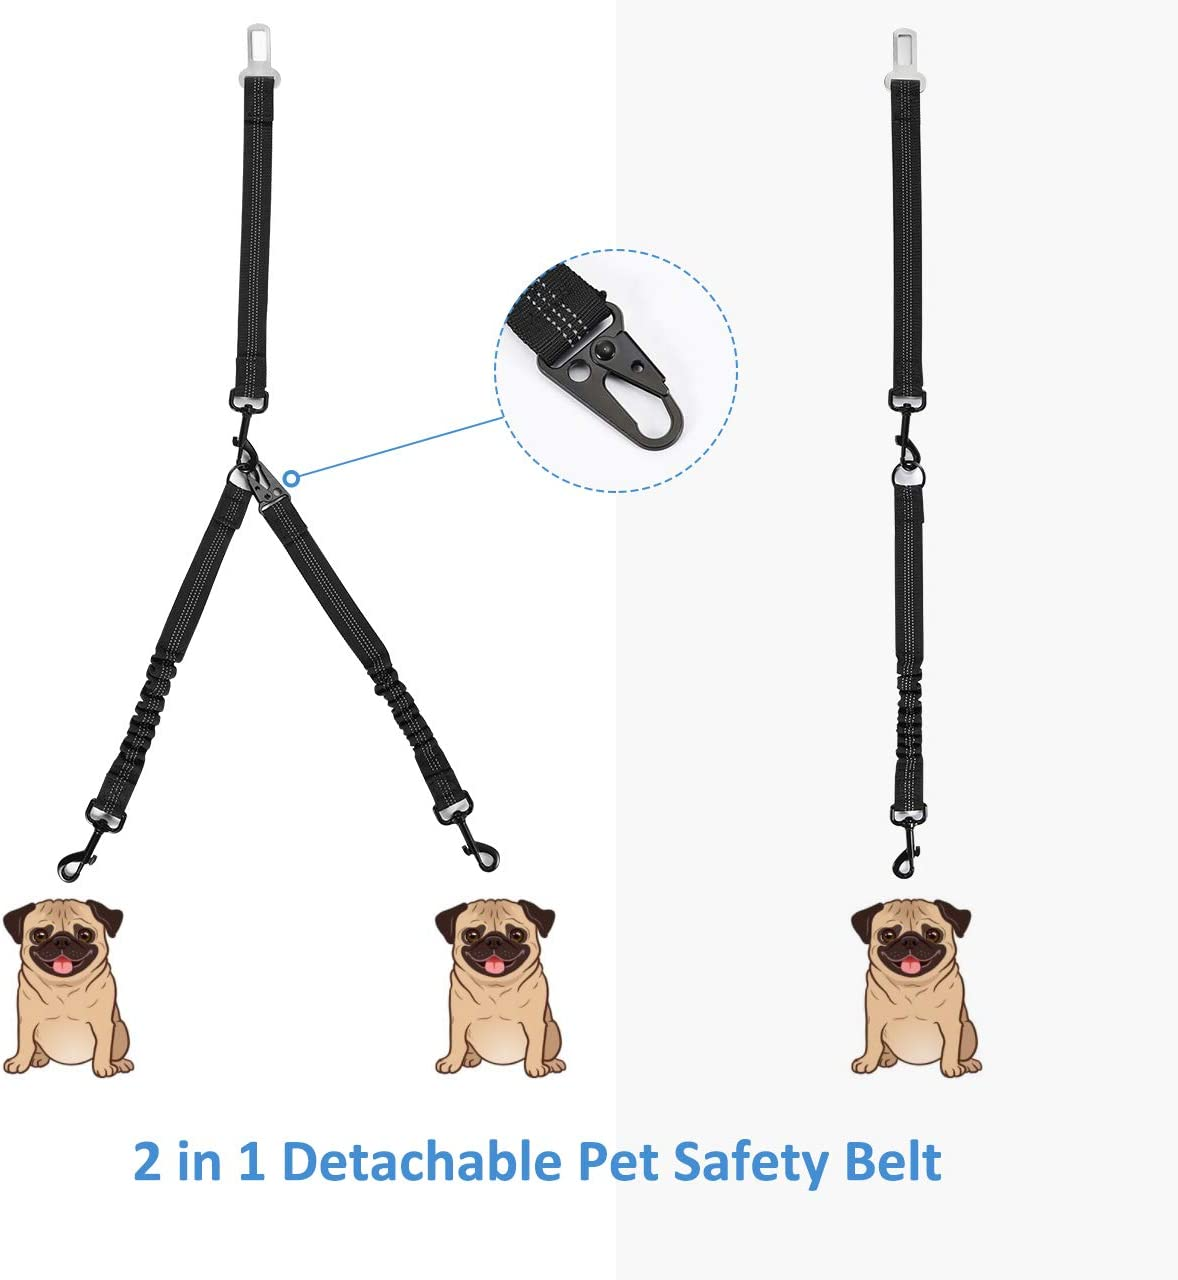 2 in 1 Detachable Dog Seat Belt Suitable for Most Vehicles Travel and Walking OMORC Car Seat Belt for Dogs 28-33 inch Pet Dog Car Safety Harness Elastic Shock Absorption Reflective Weave Design